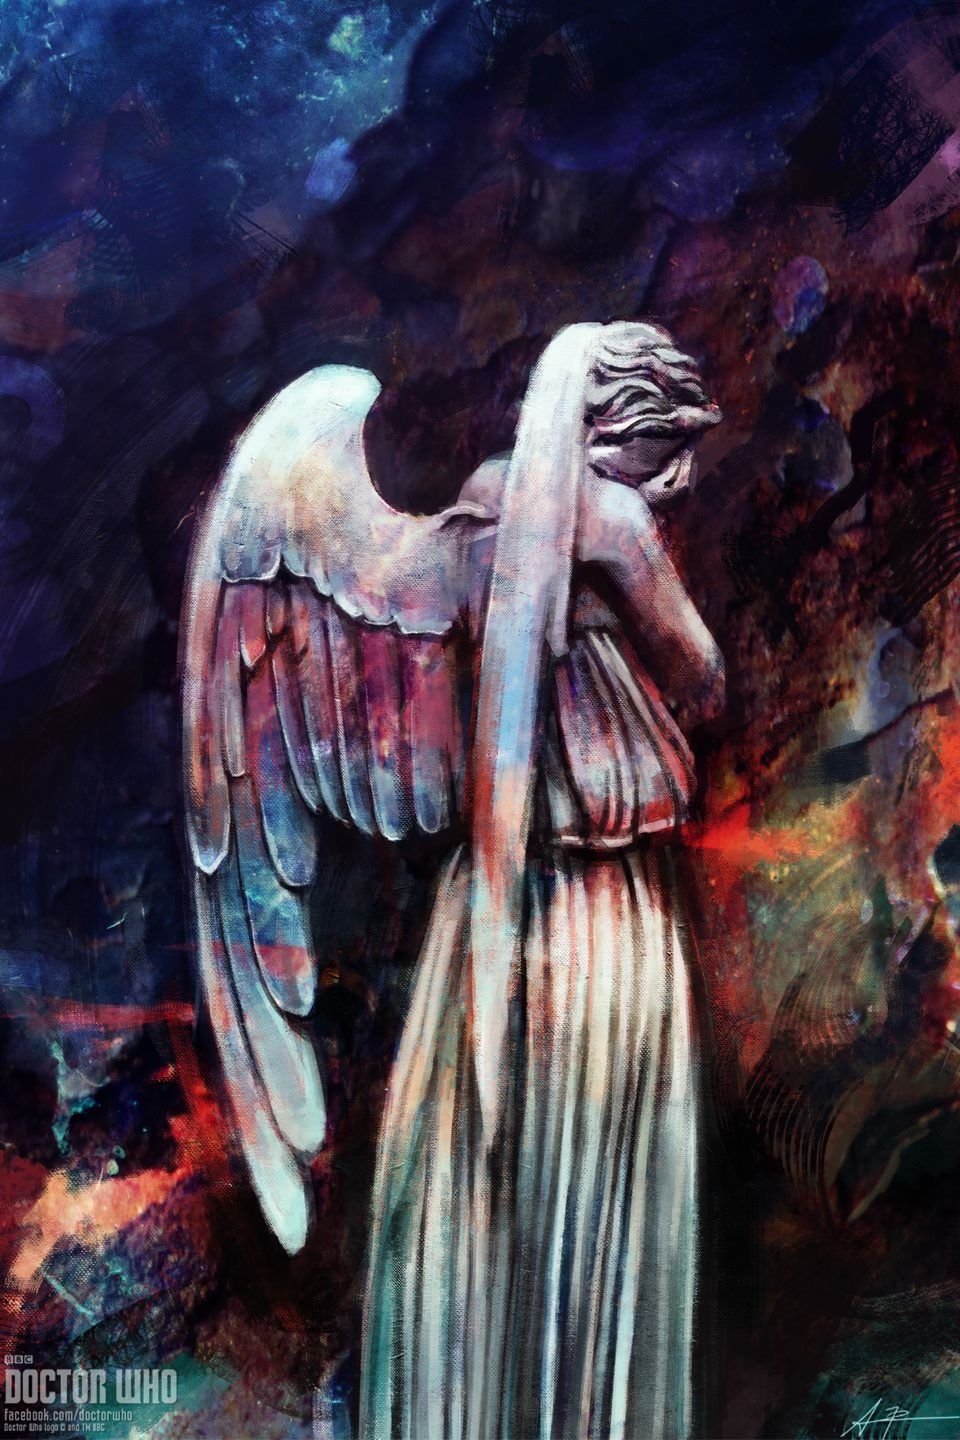 Angel Falls Hd Wallpaper Doctor Who Weeping Angels By Alice X Zhang Doctor Who